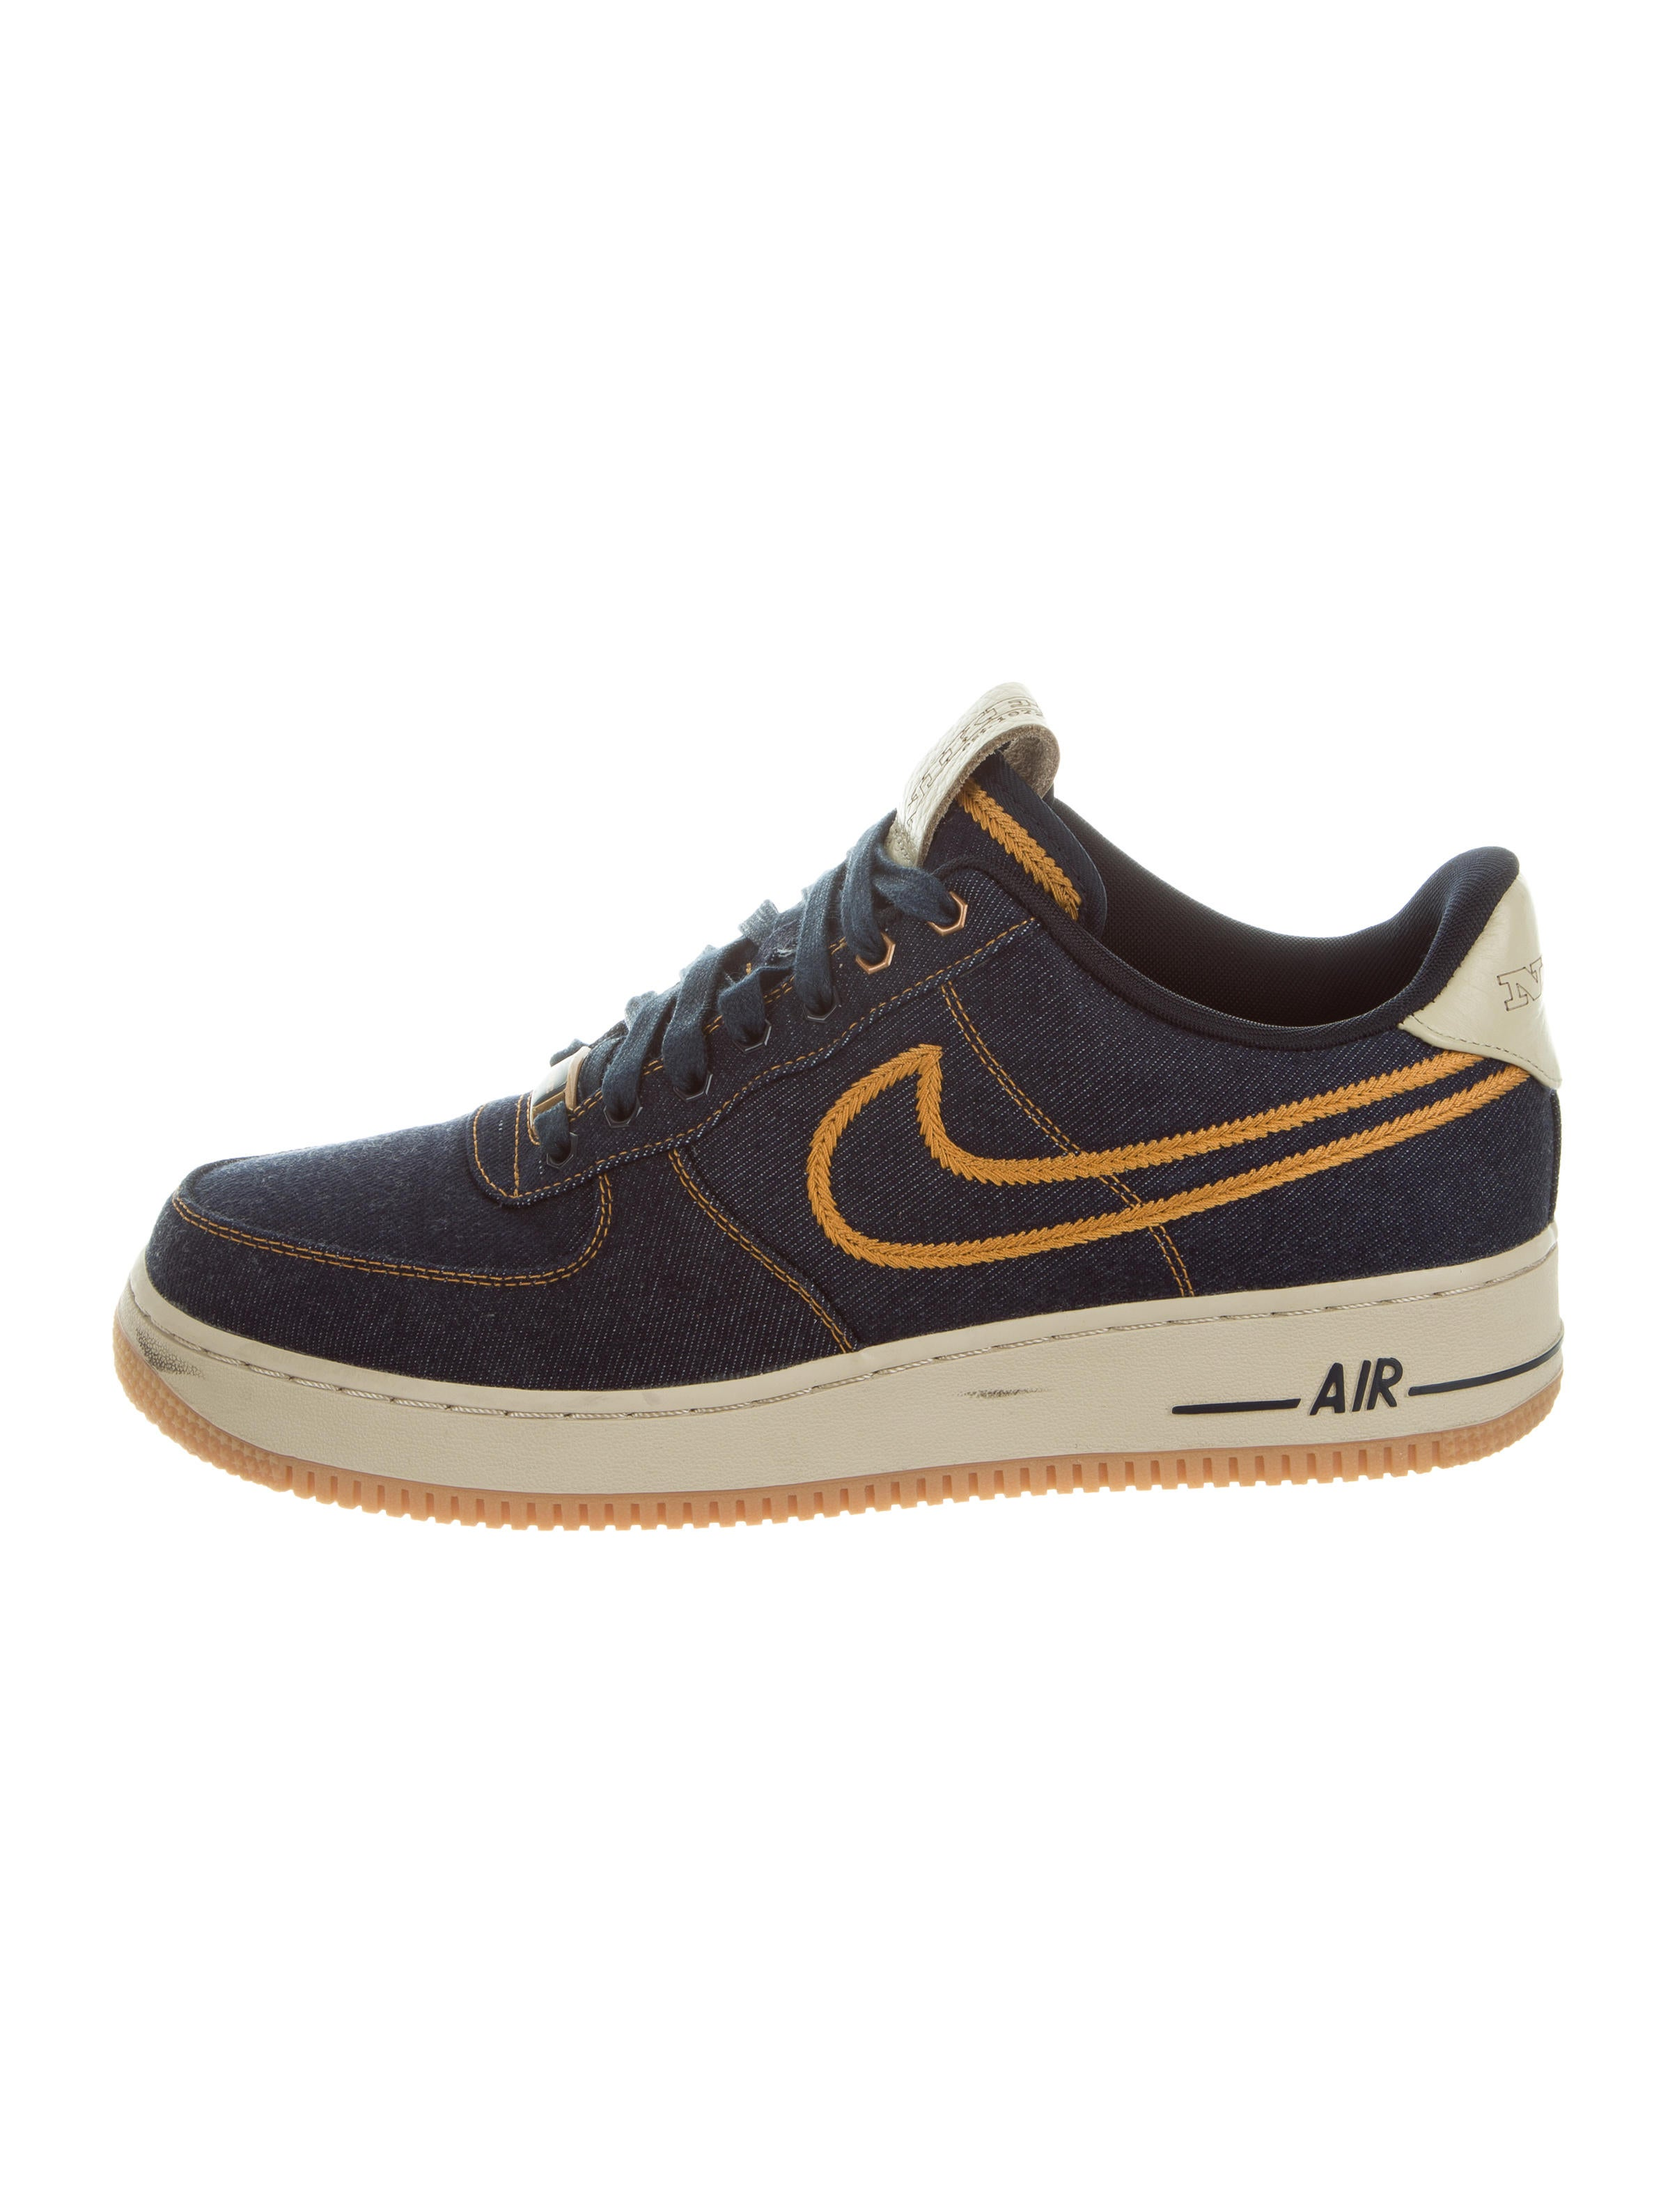 nike air force 1 denim sneakers shoes wu221420 the. Black Bedroom Furniture Sets. Home Design Ideas